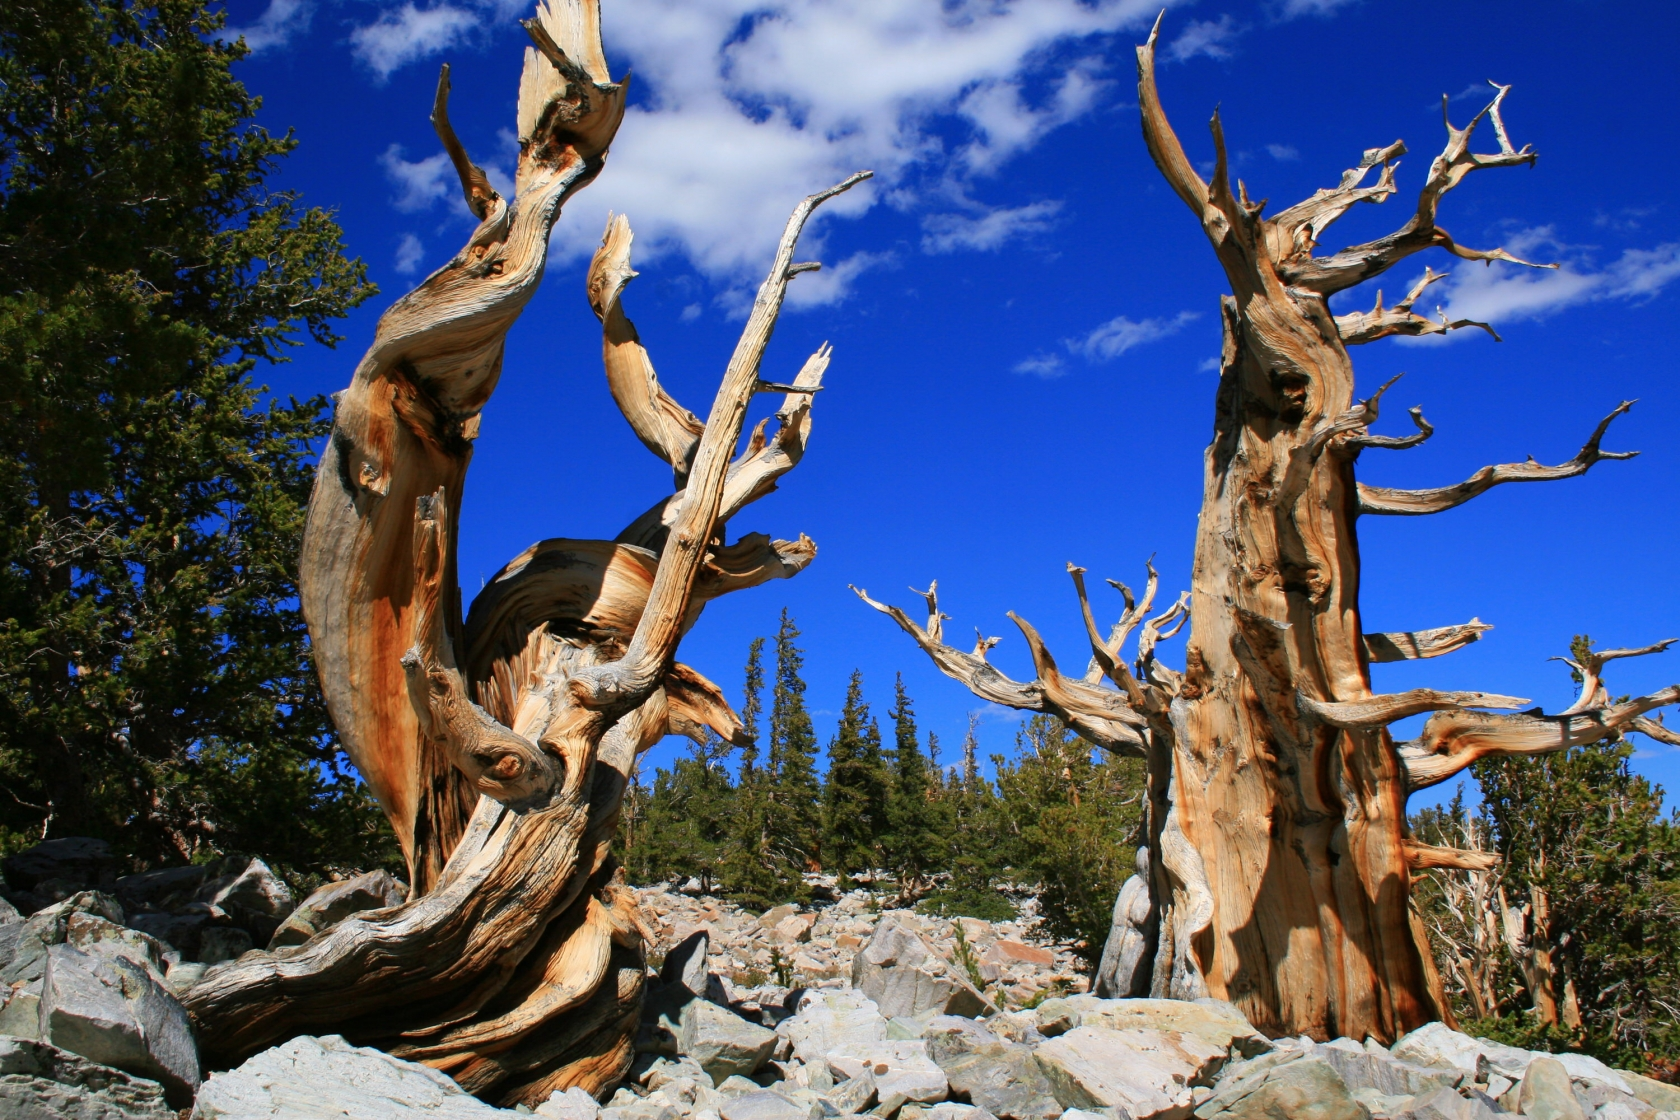 Ancient, weather worn, wiry branched Bristlecone pines stretch up to a deep blue sky in rocky, high-elevation area Great Basin National Park.